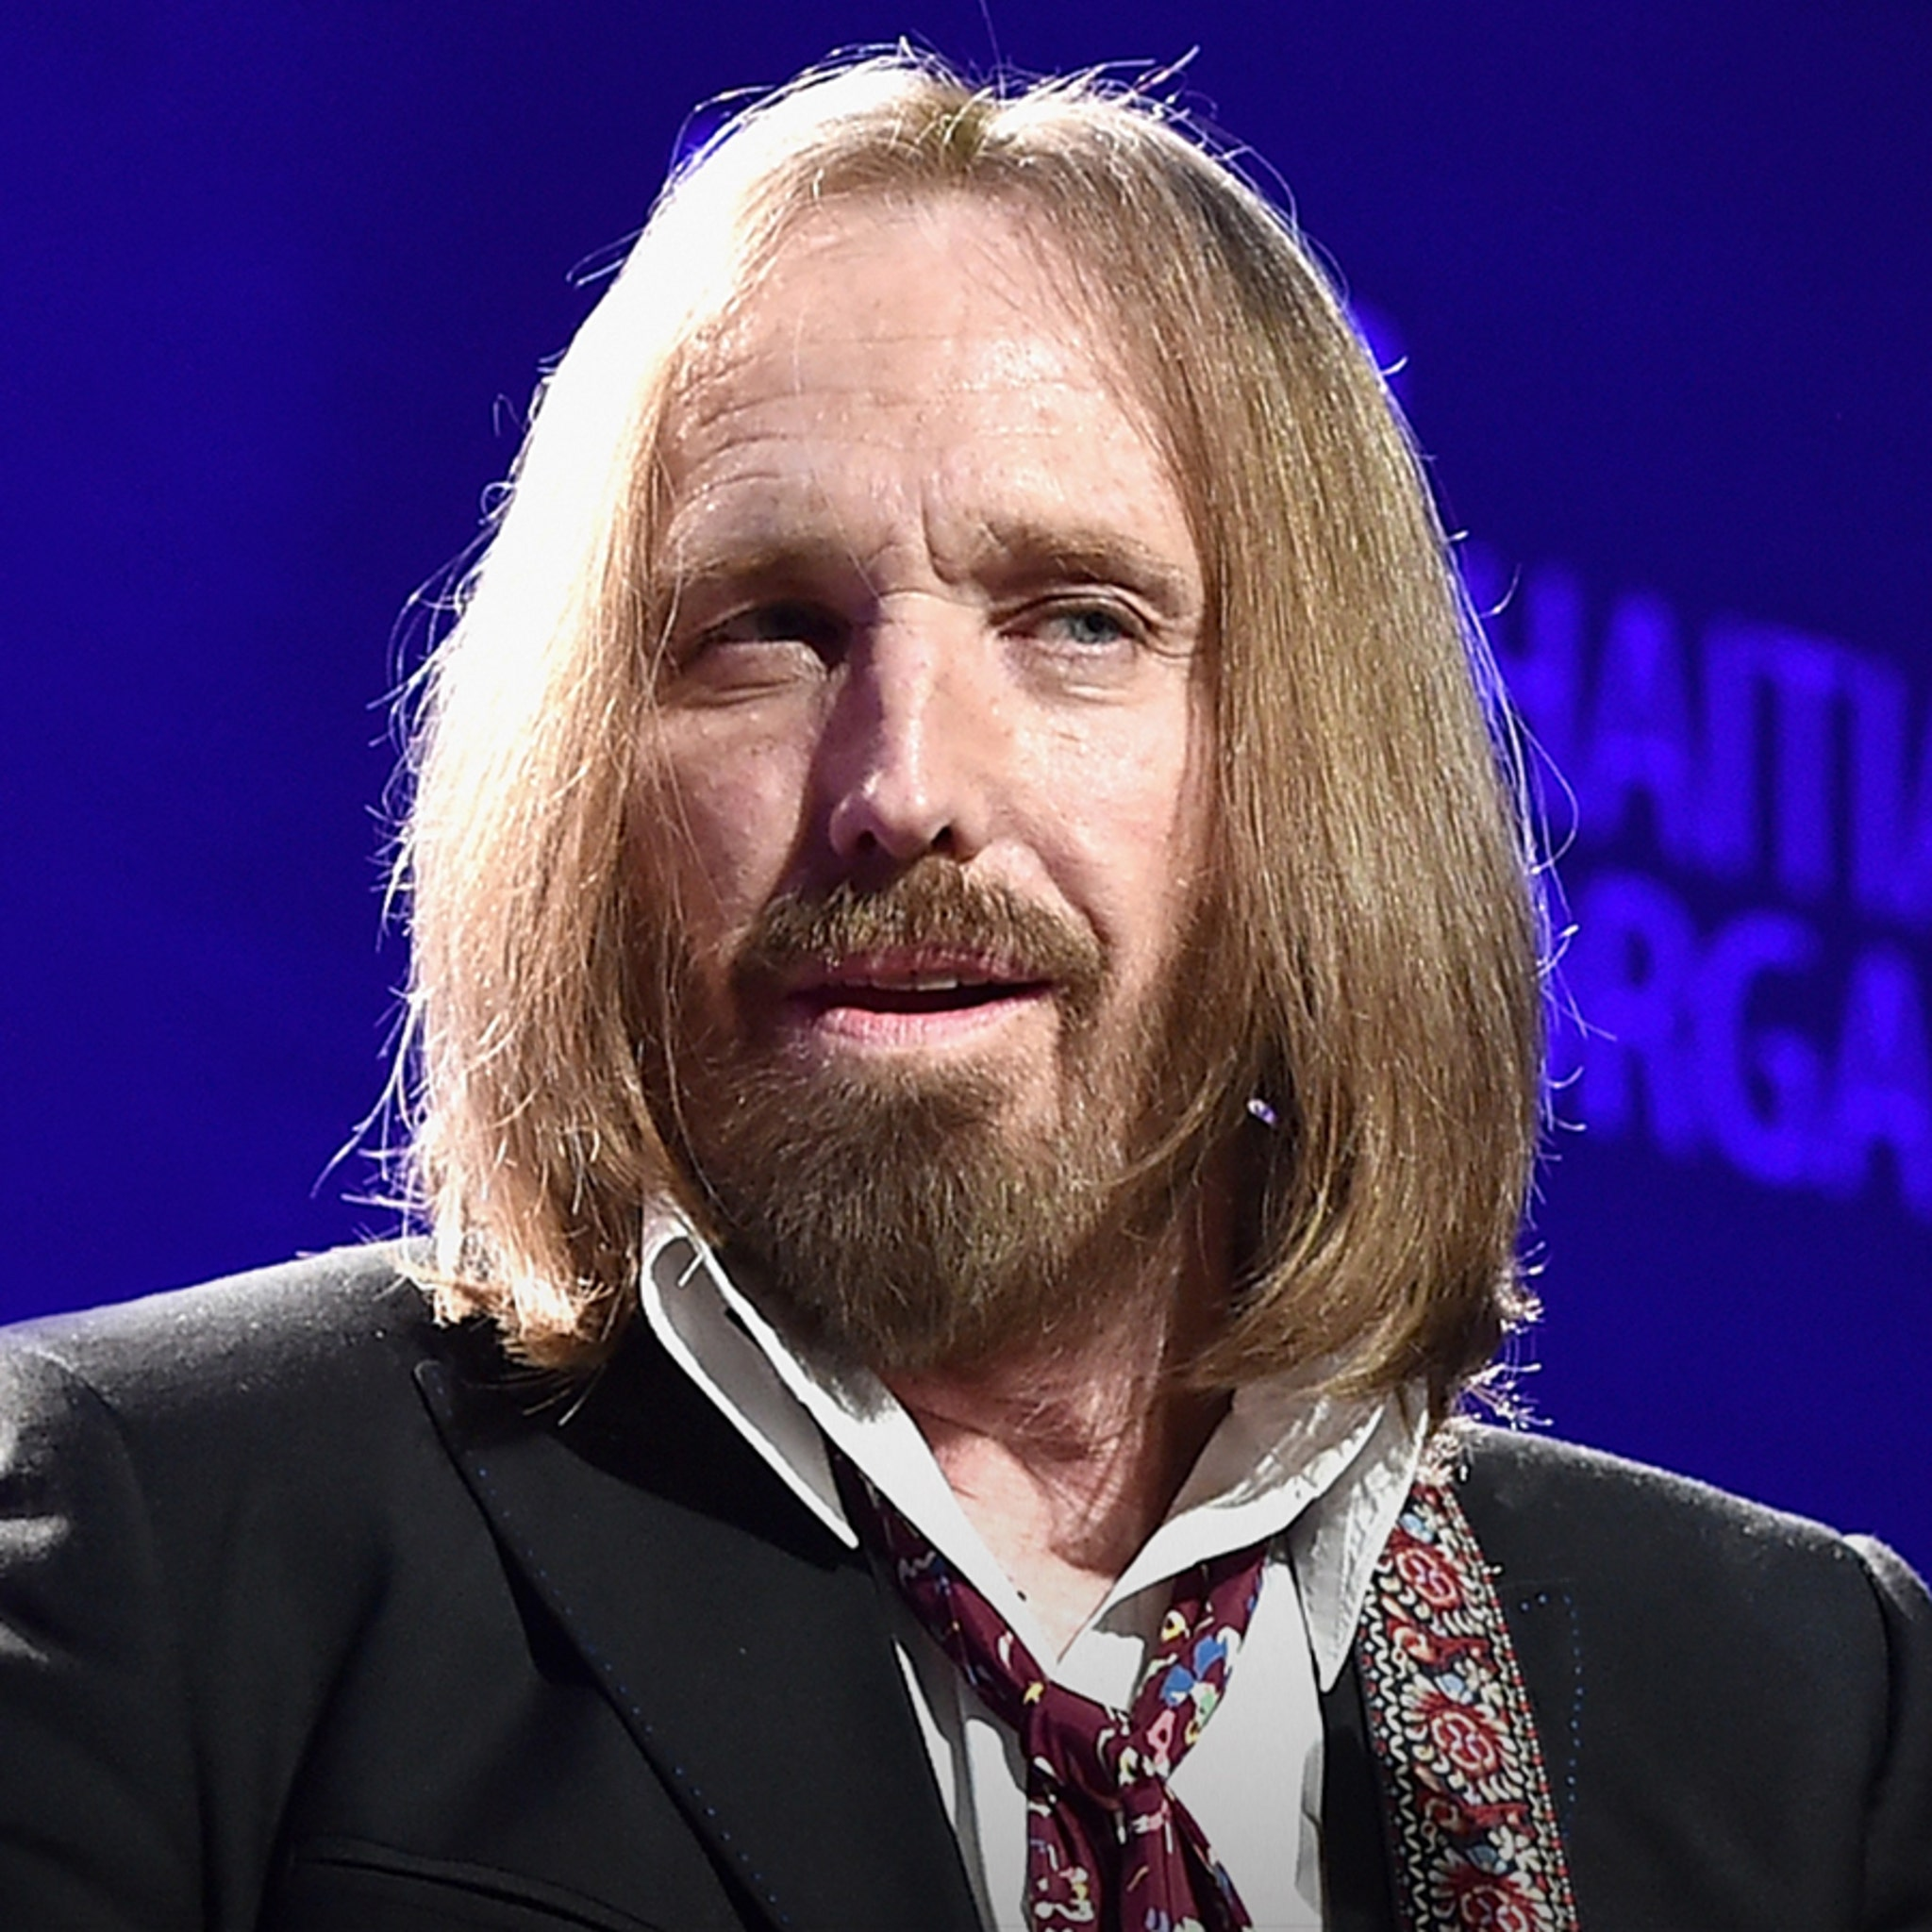 Tom Petty Tour 2019 Tom Petty's Widow Says His Daughters Are Attacking Members of